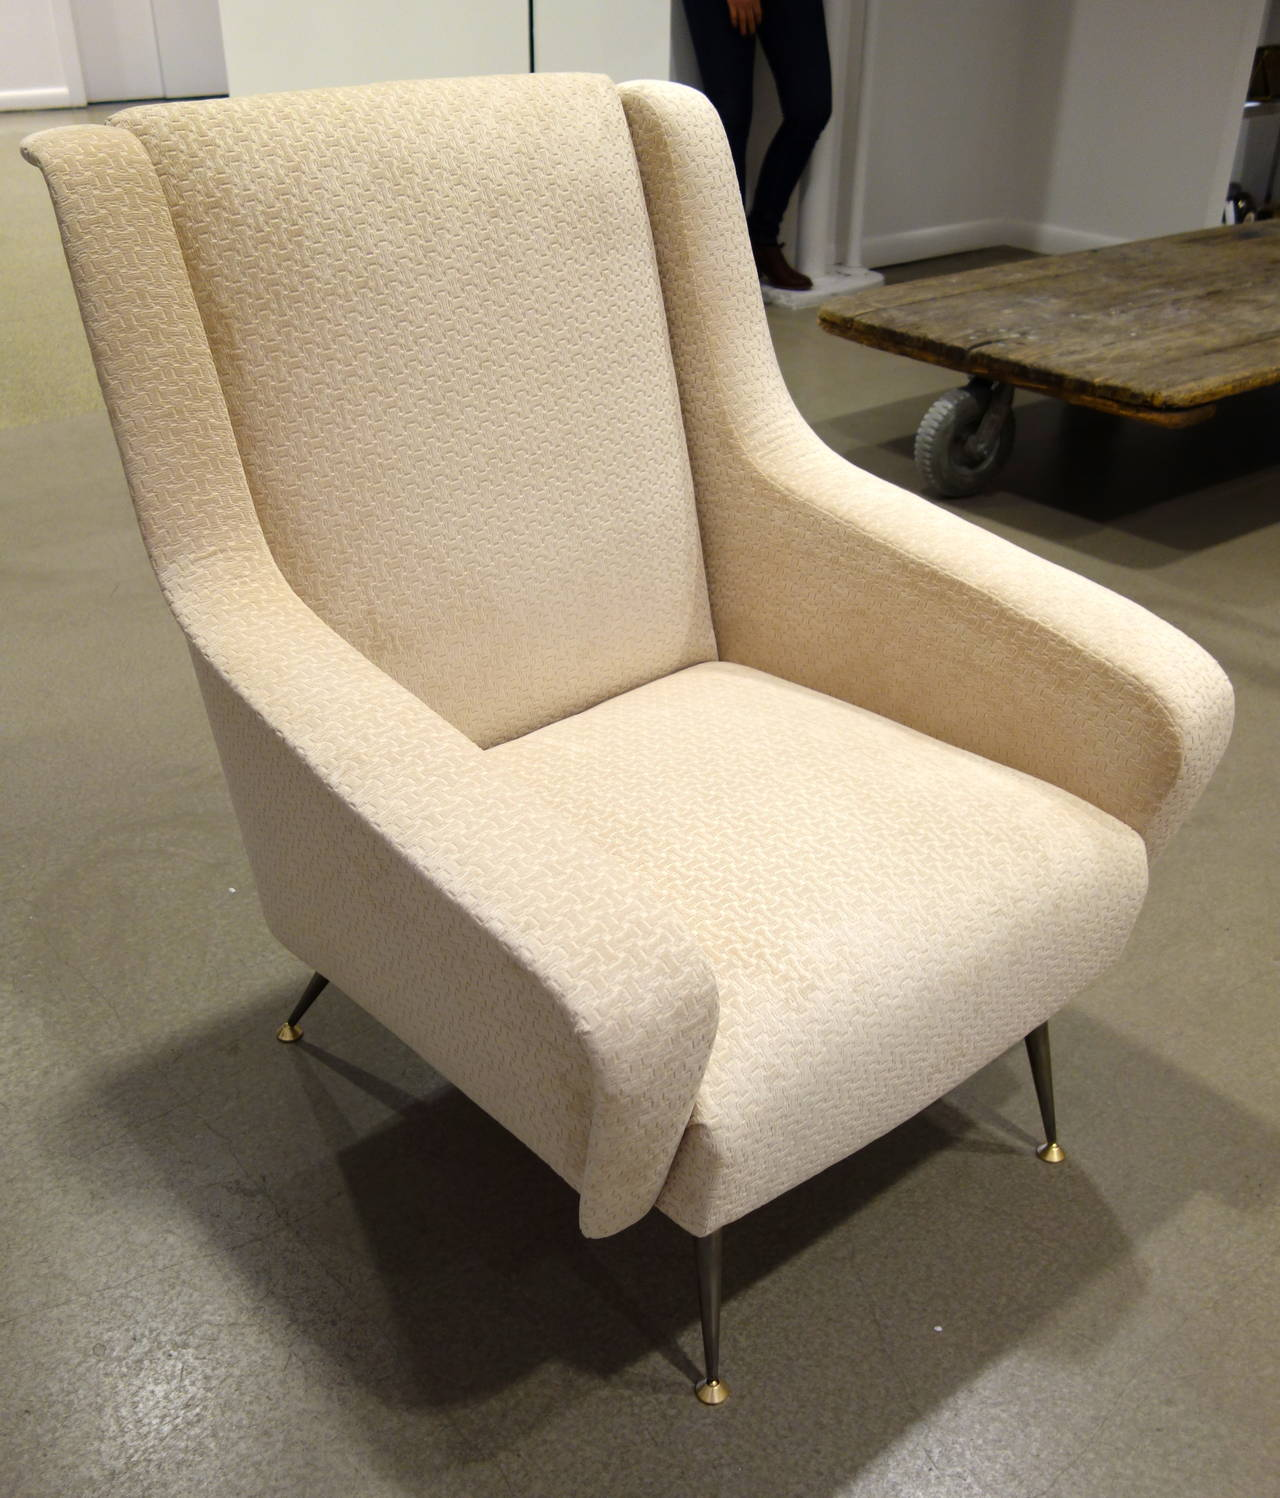 A pair of Mid-Century Italian lounge or armchairs with sculptural flat armrests, tight backs and seats resting on metal legs with brass capped feet newly upholstered in pale mushroom geometric patterned chenille. Image 6 shows the truest color and a